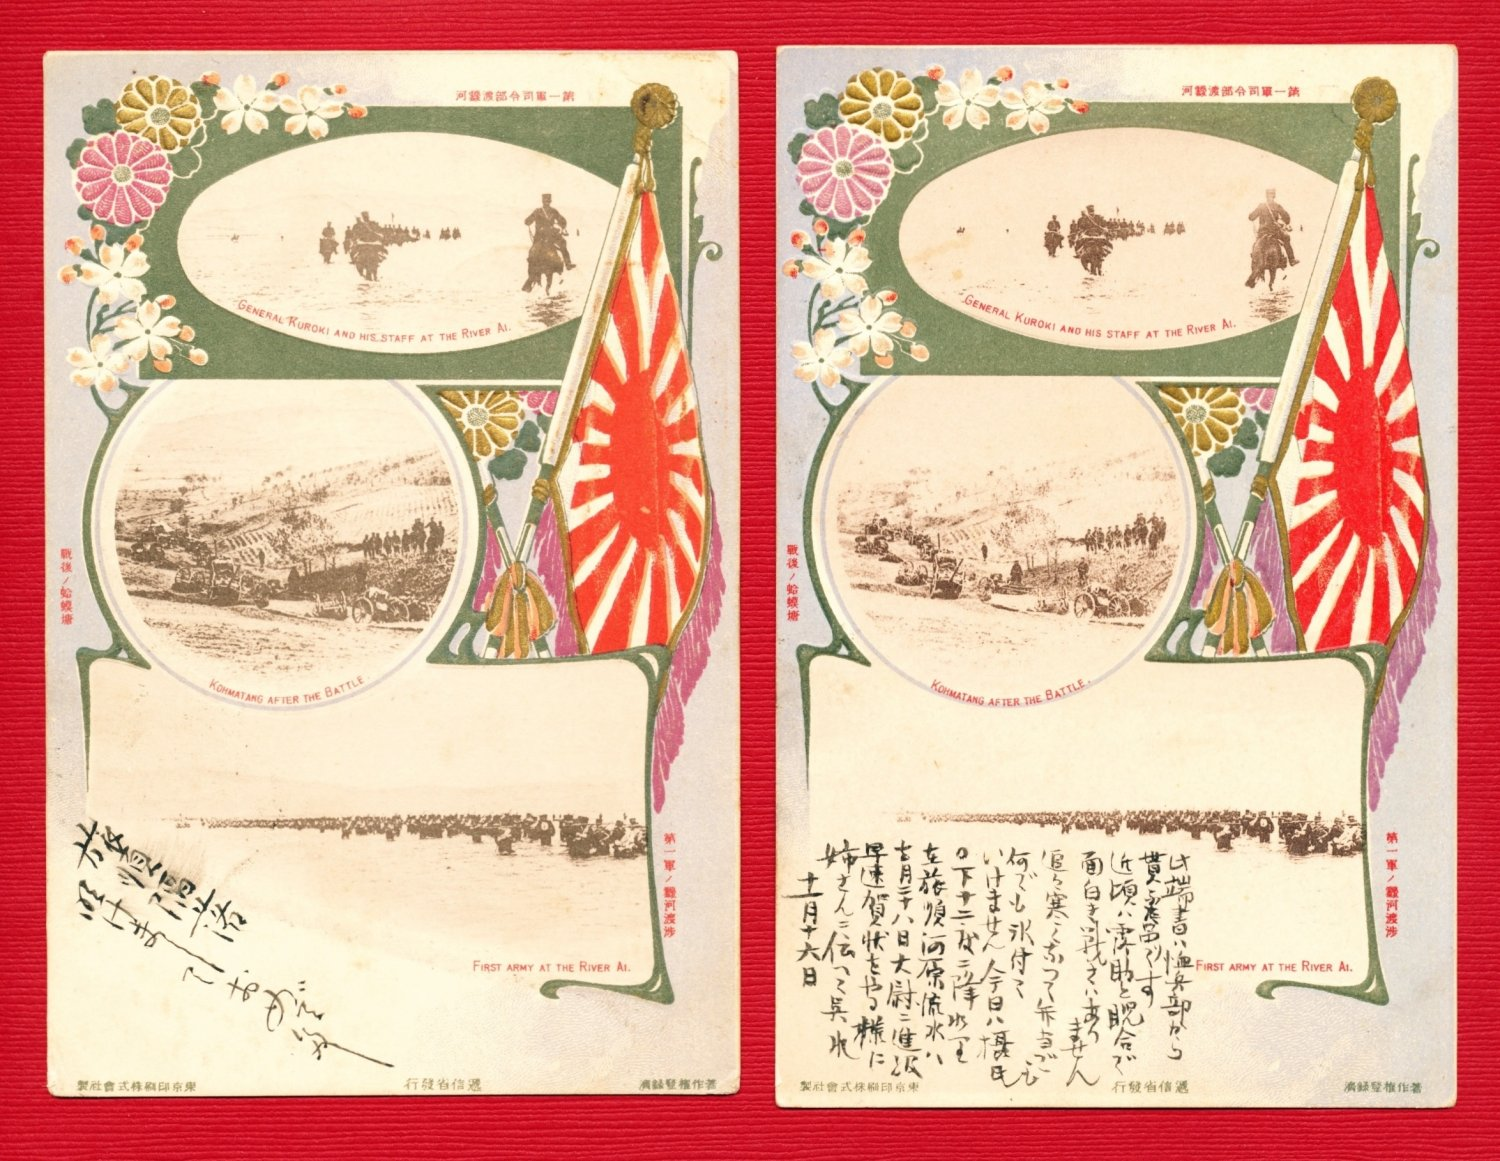 1905 Set of 2 JAPAN Postcards from Soldier at Front Russo-Japanese War Military Post #EM206